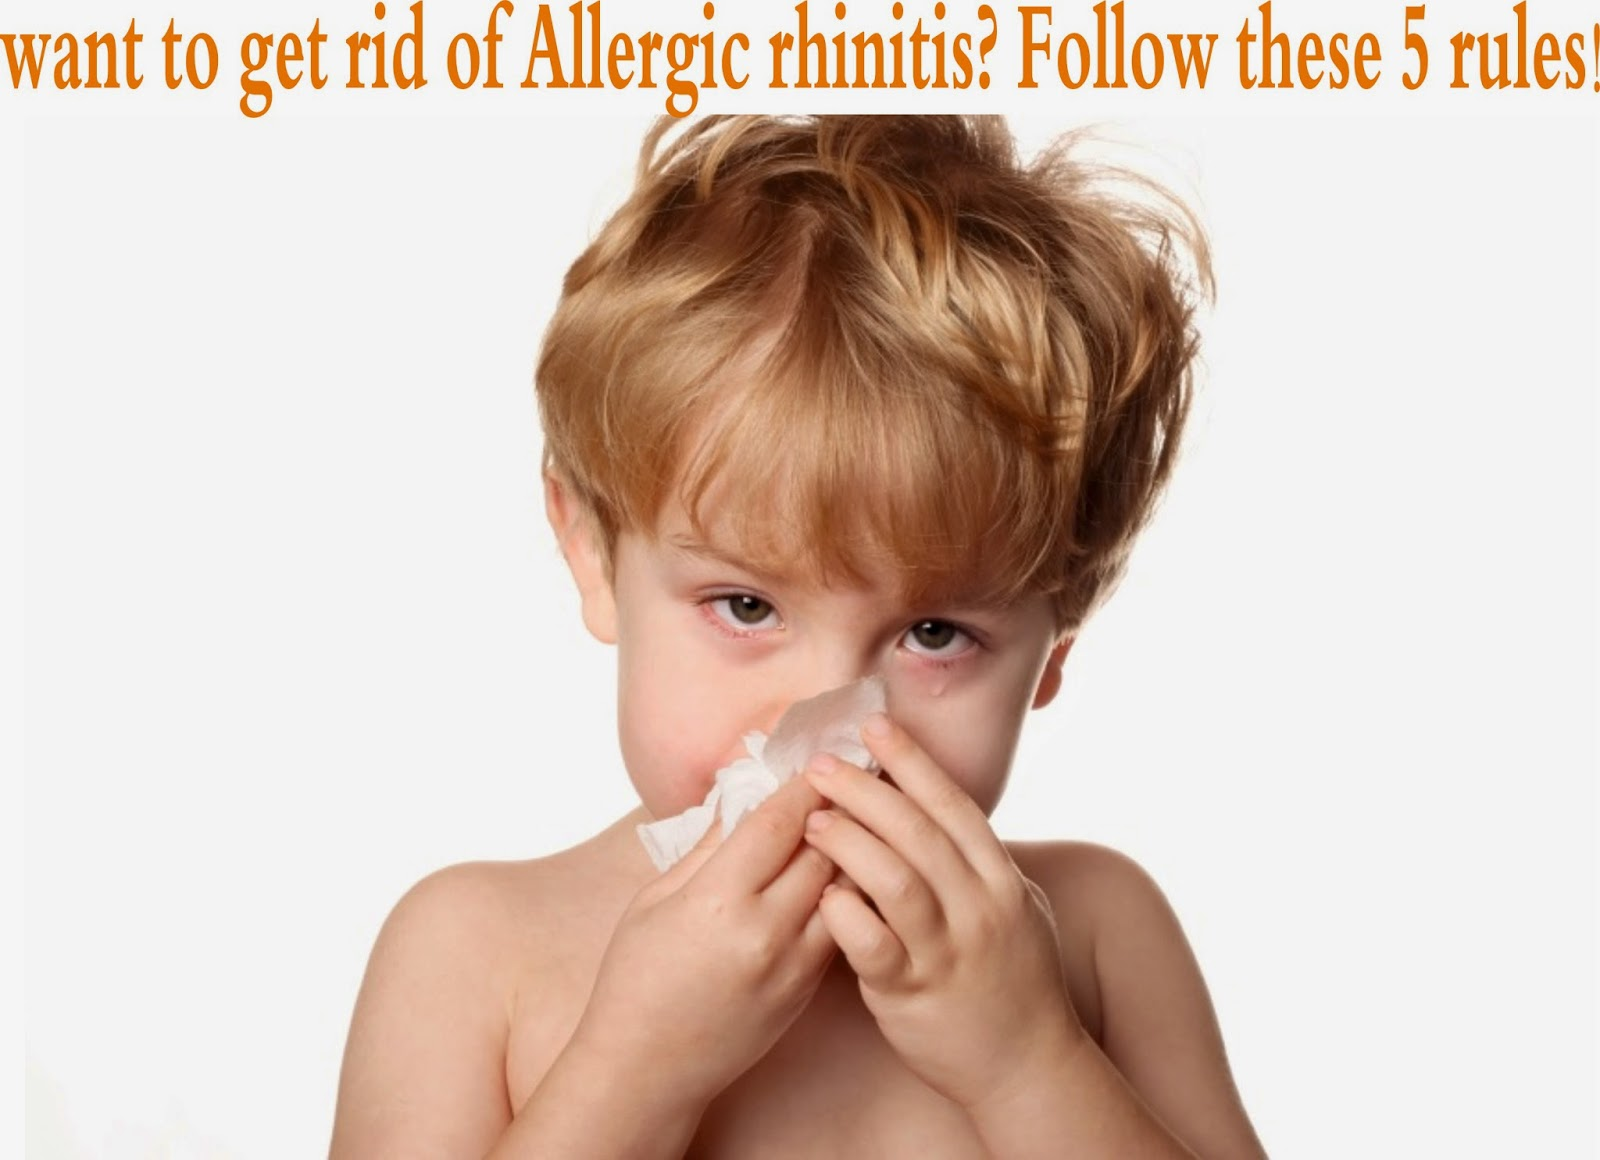 Is it possible to get rid of allergic rhinitis